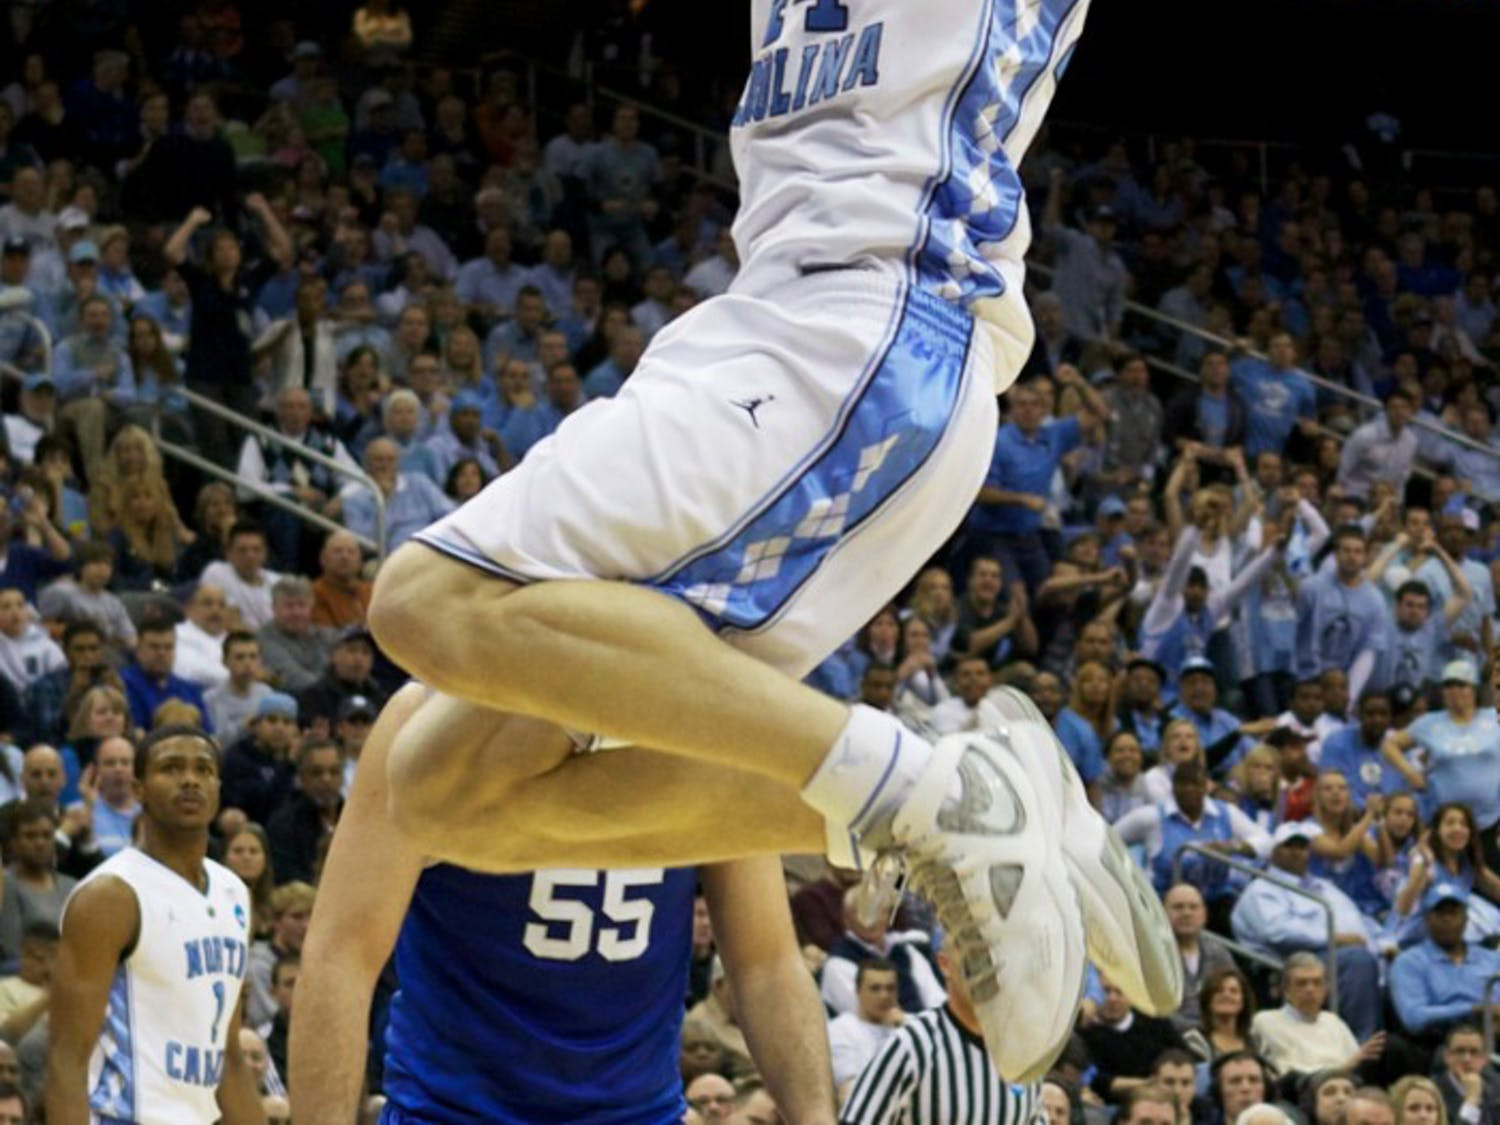 Tyler Zeller dunks in UNC's 2011 NCAA tournament matchup with Kentucky. Zeller, who led the team in scoring, had 21 points in the Tar Heels' 76-69 Elite Eight loss.